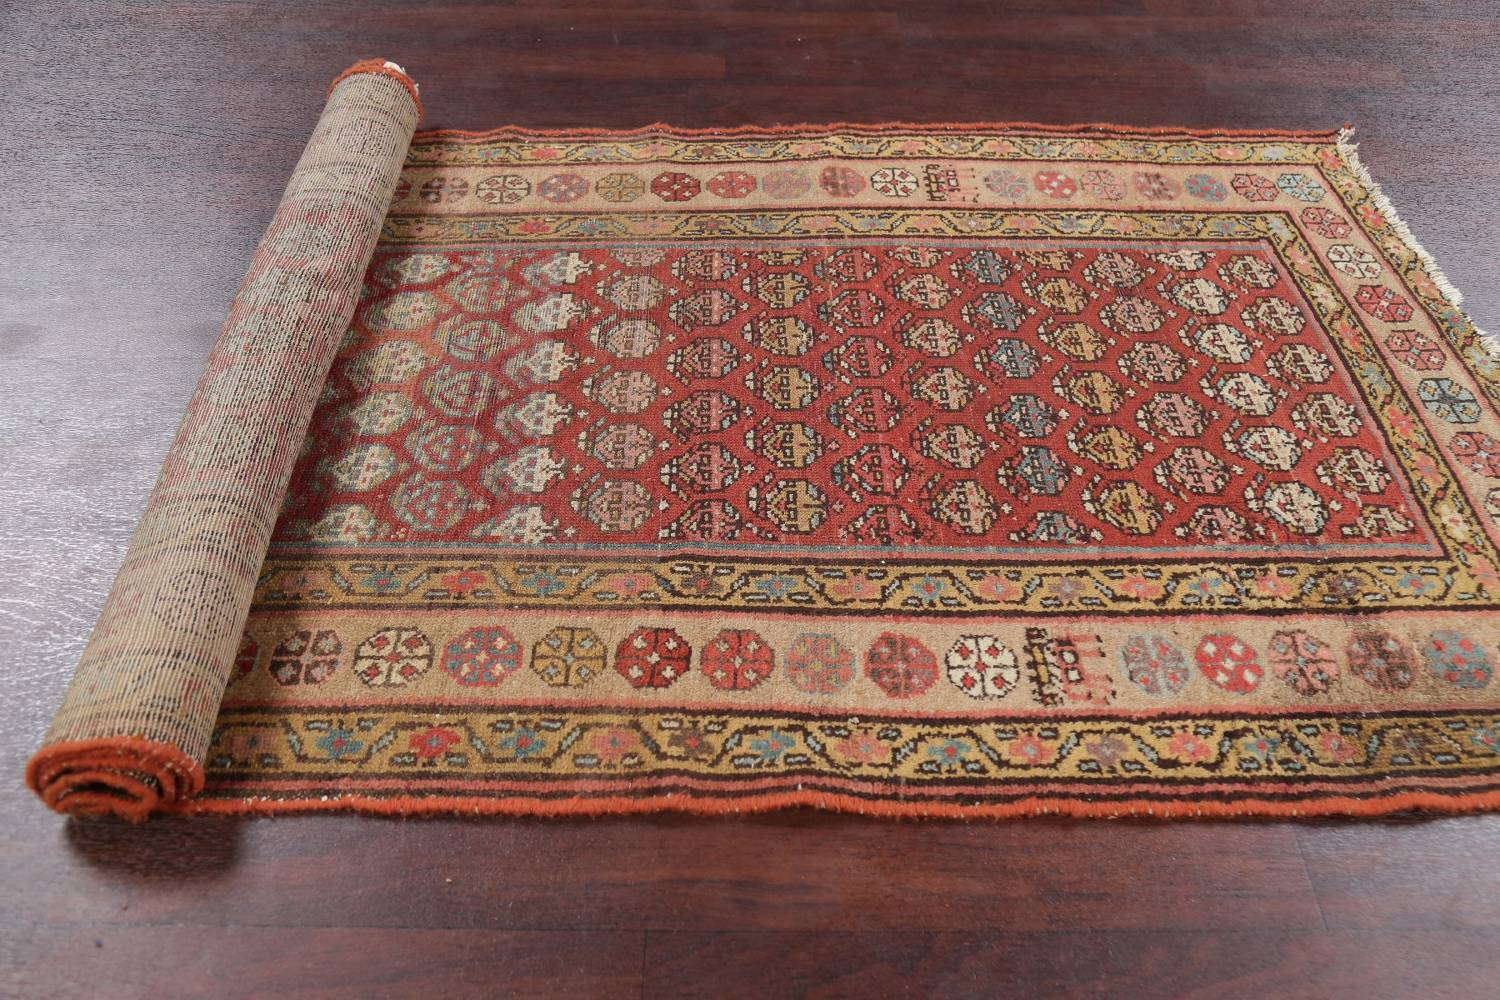 Pre-1900 Antique Vegetable Dye Malayer Persian Rug 3x8 image 20